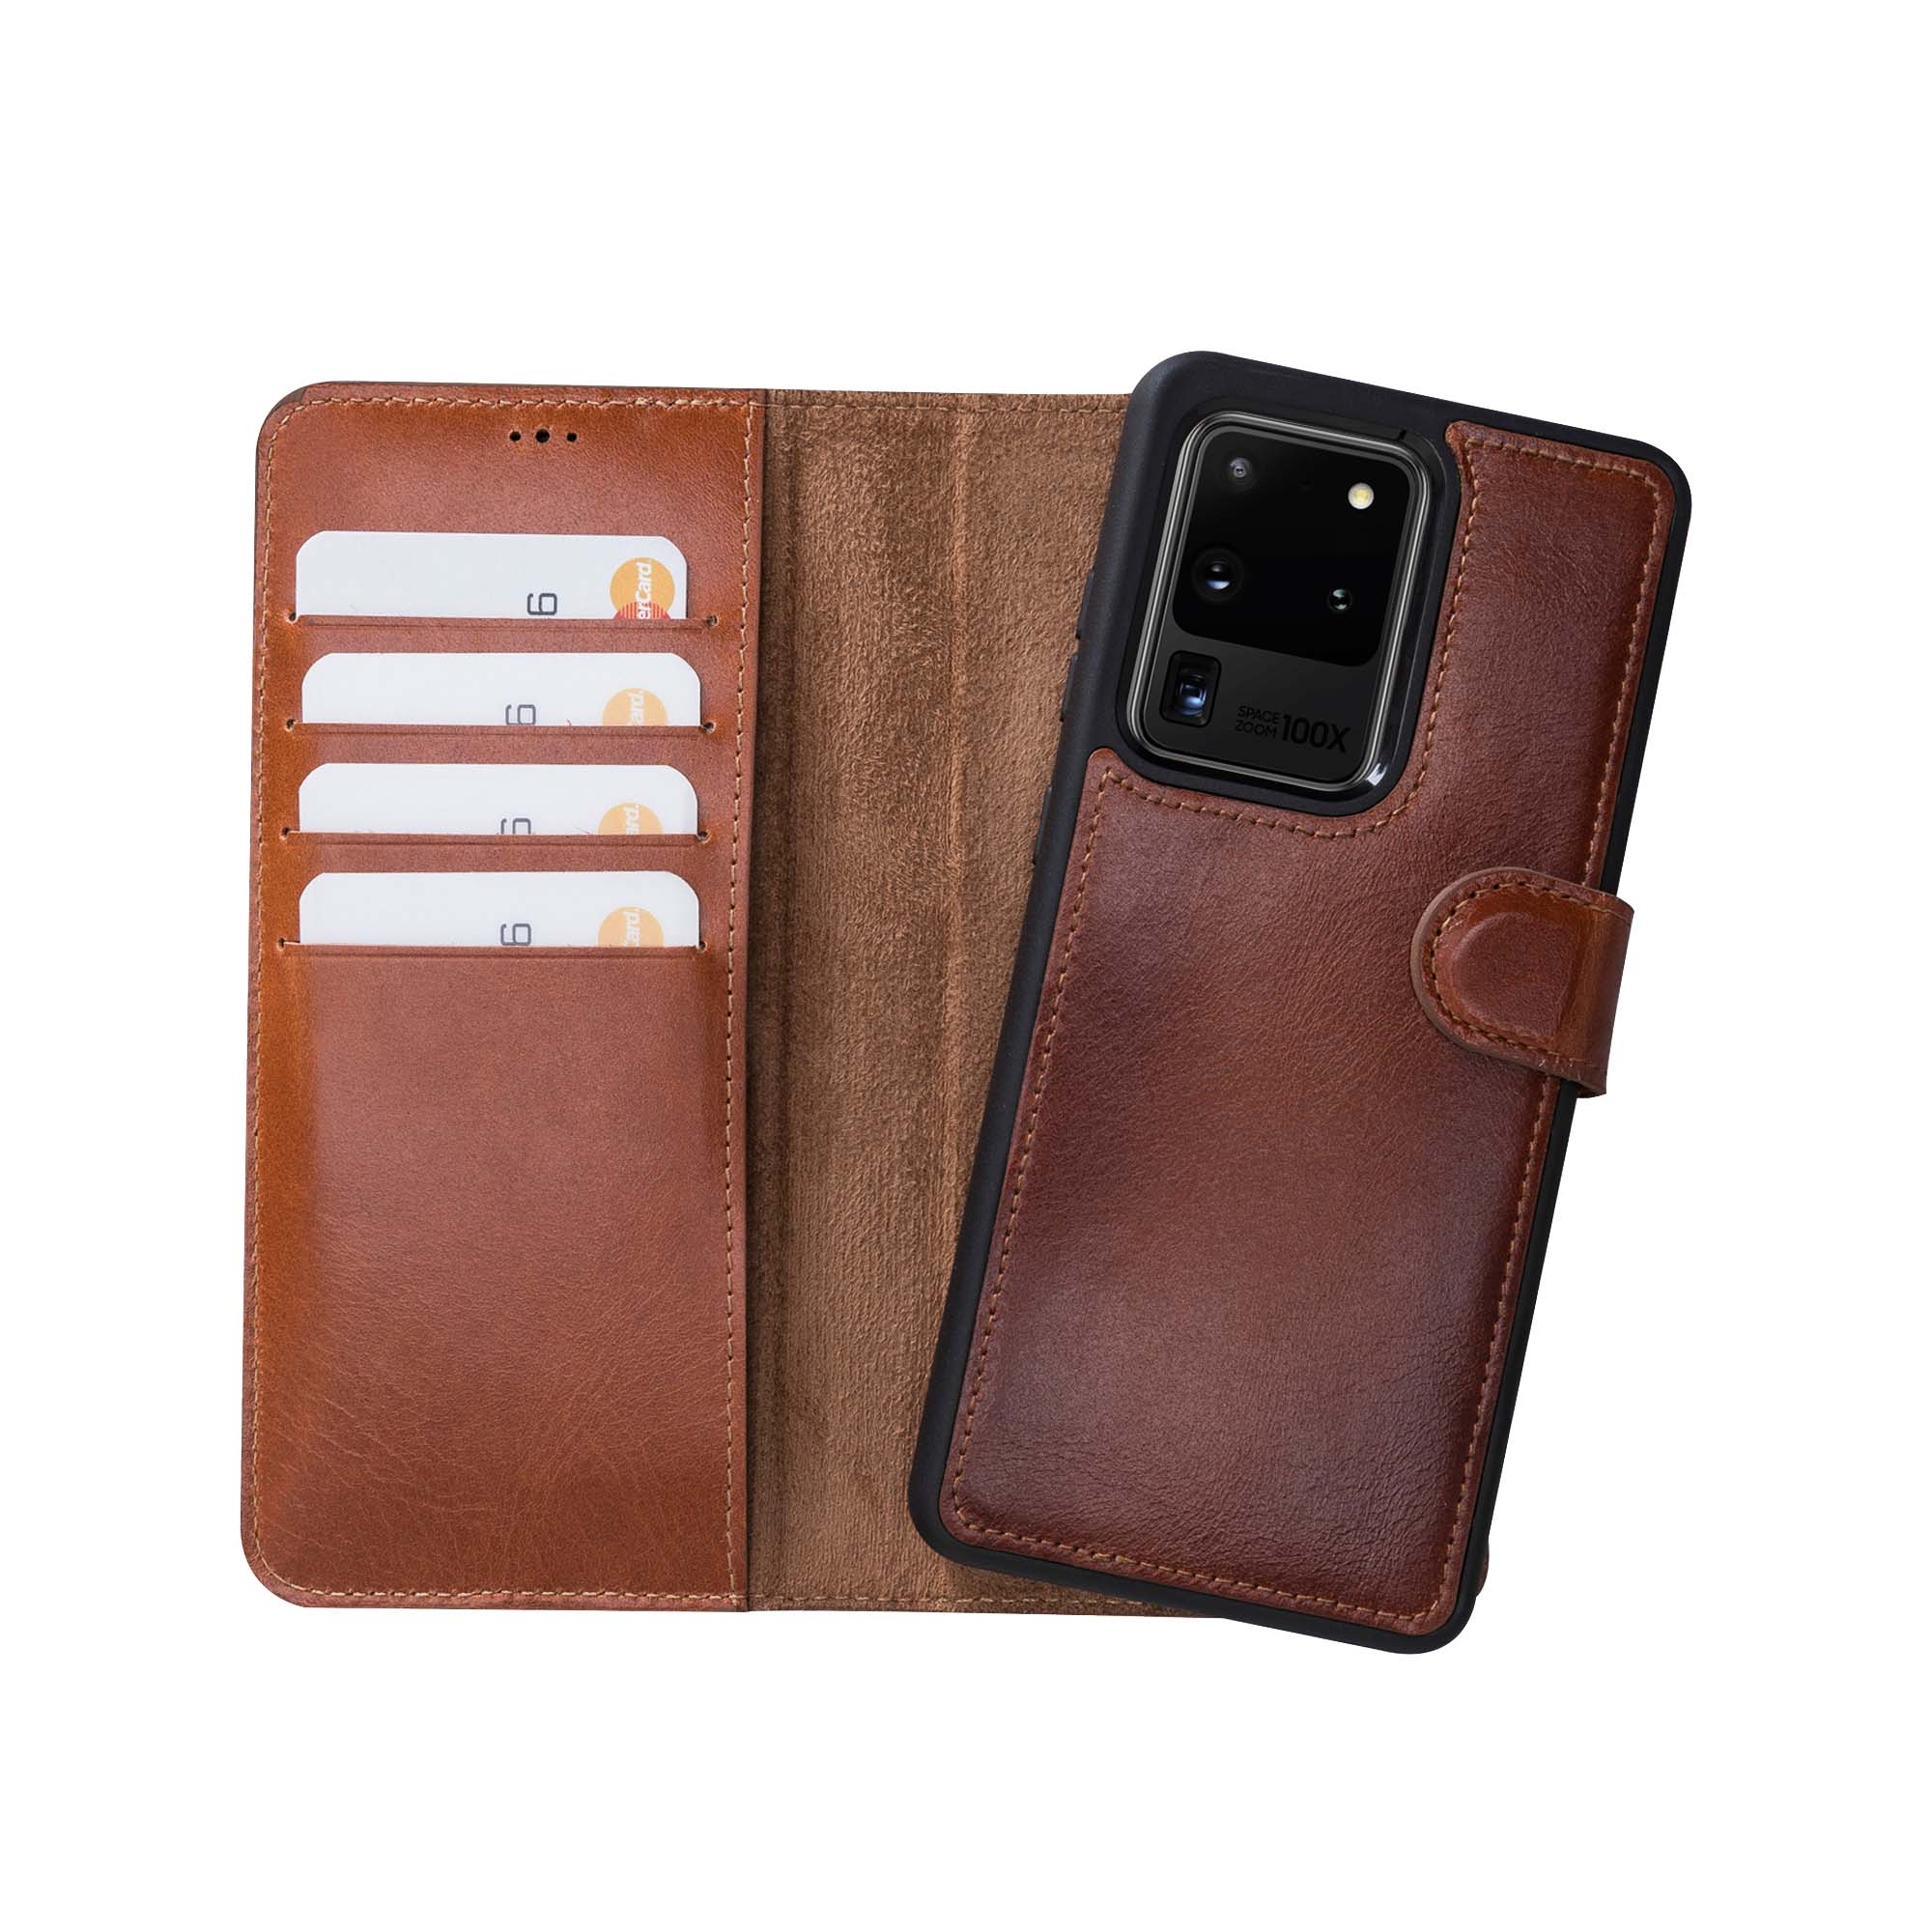 "Magic Magnetic Detachable Leather Wallet Case for Samsung Galaxy S20 Ultra (6.9"") - EFFECT BROWN"